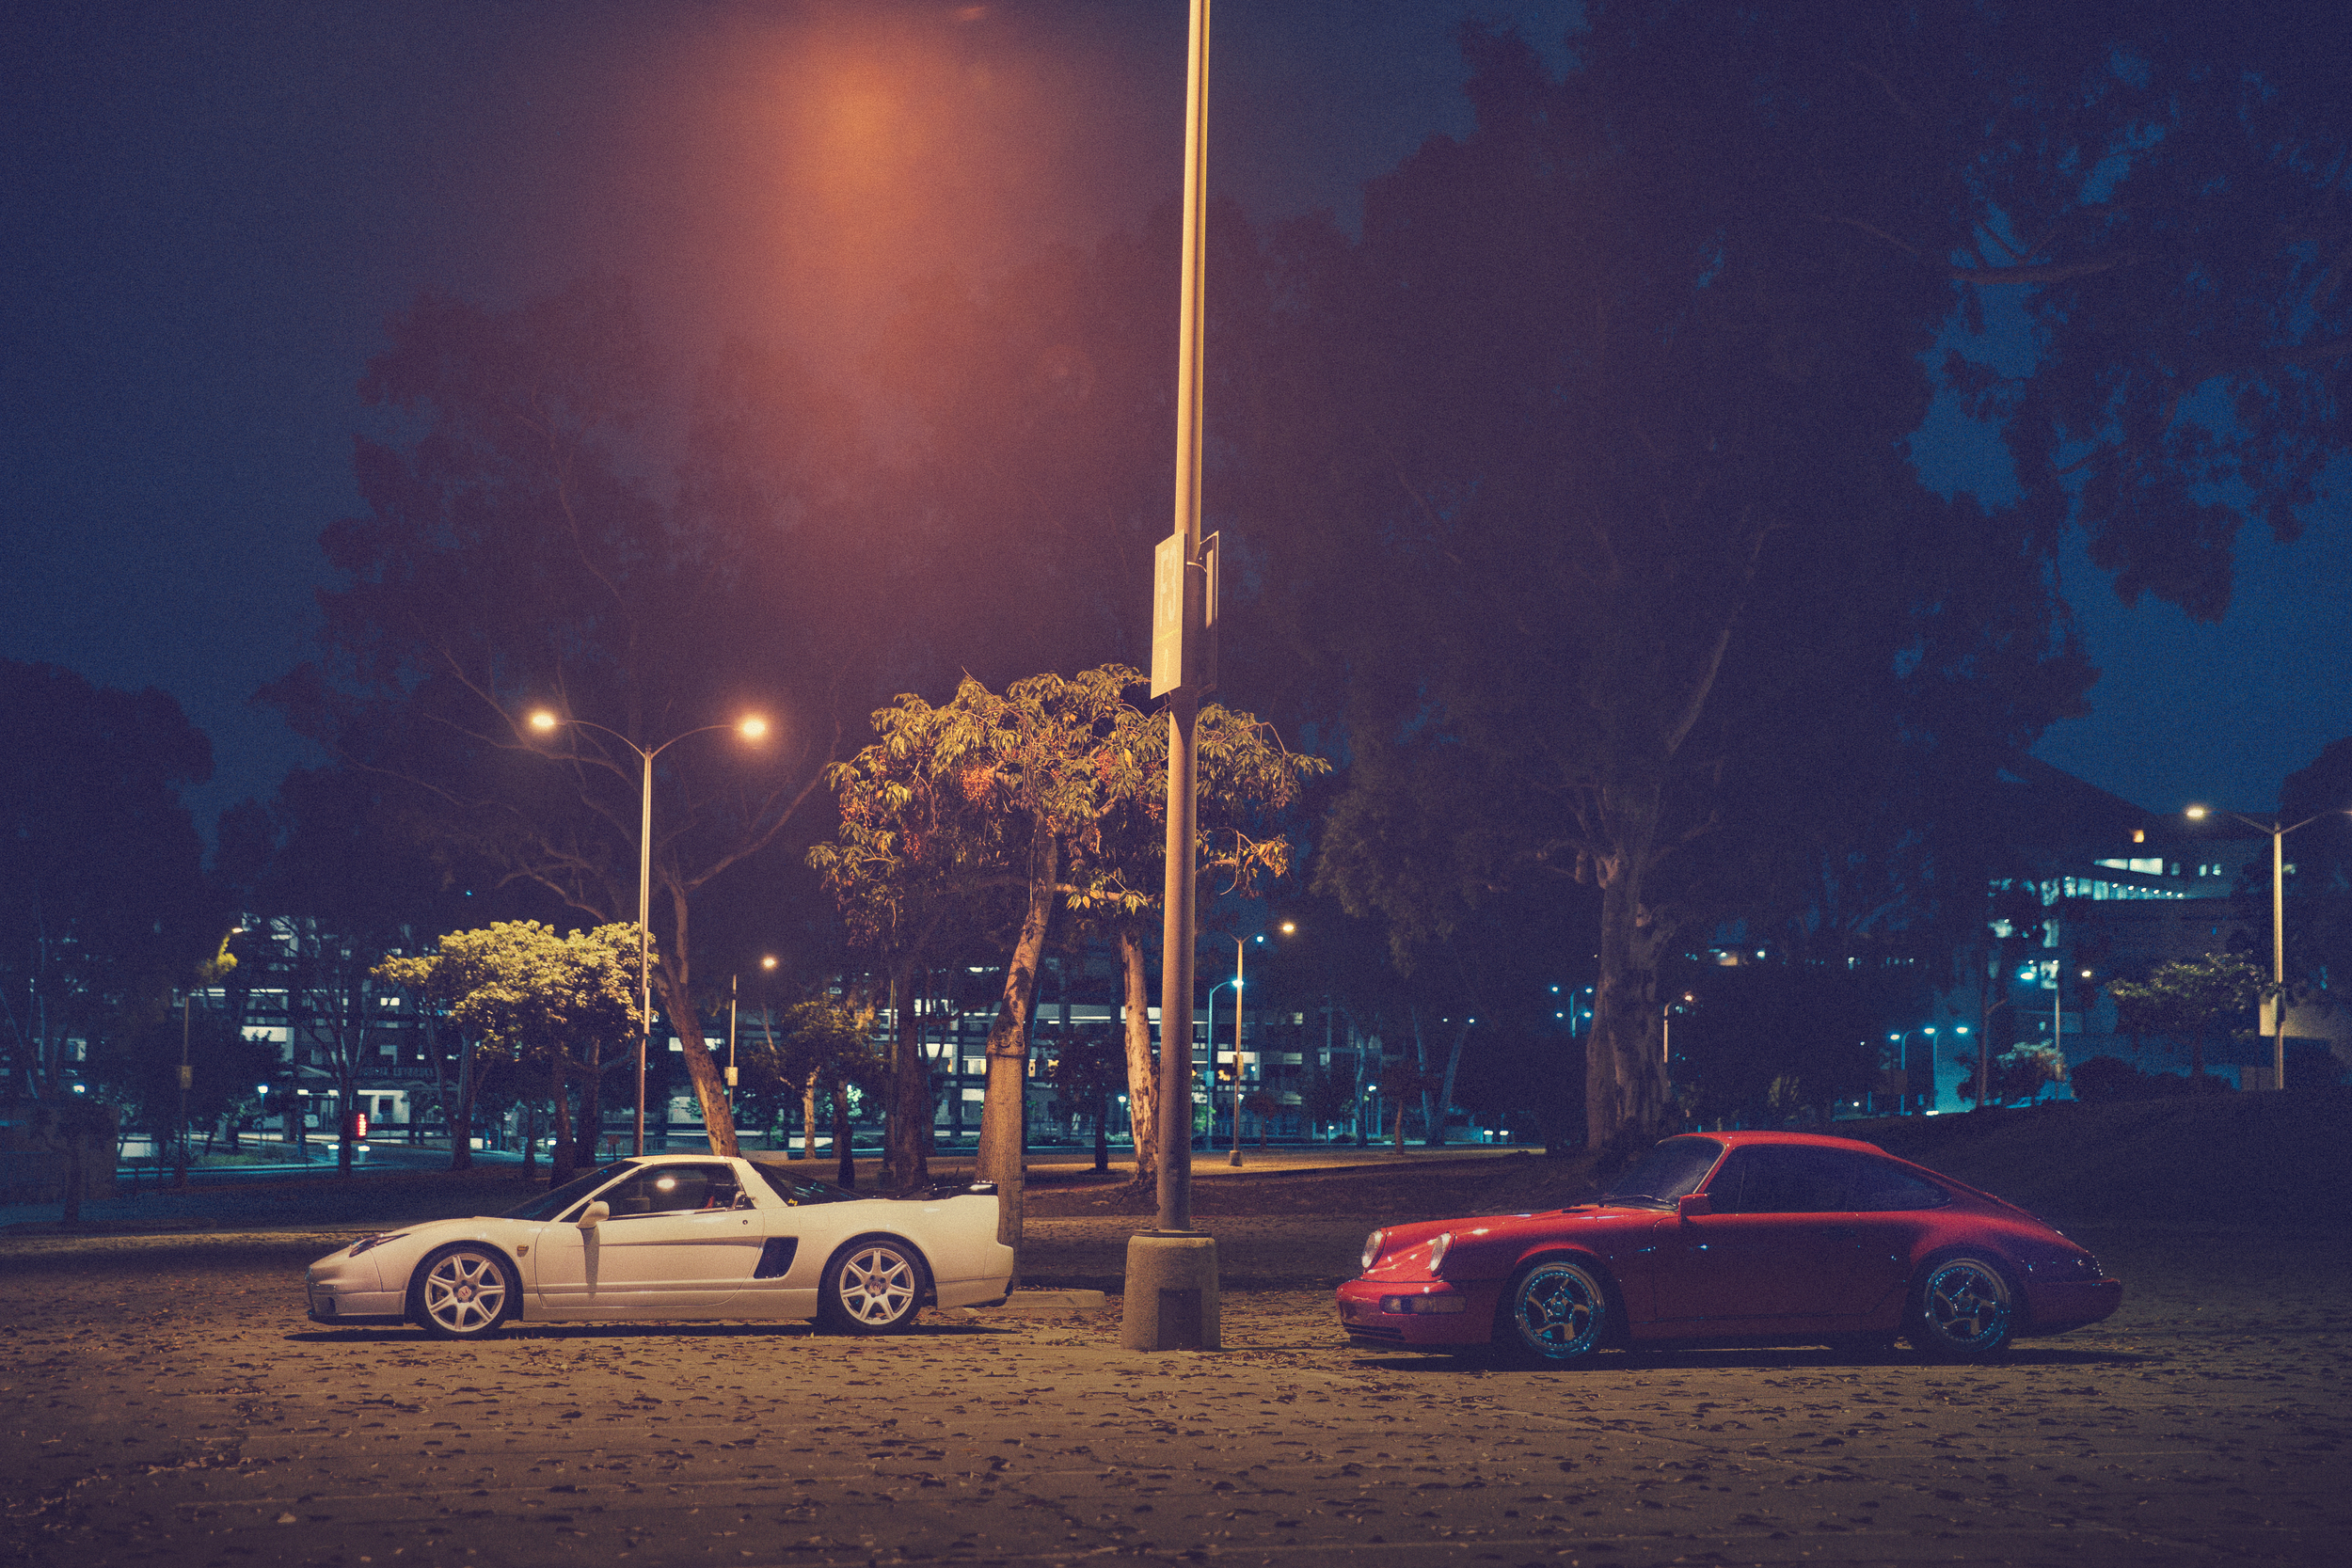 Shots done for Instagram Accounts: ns2kx and 911na2